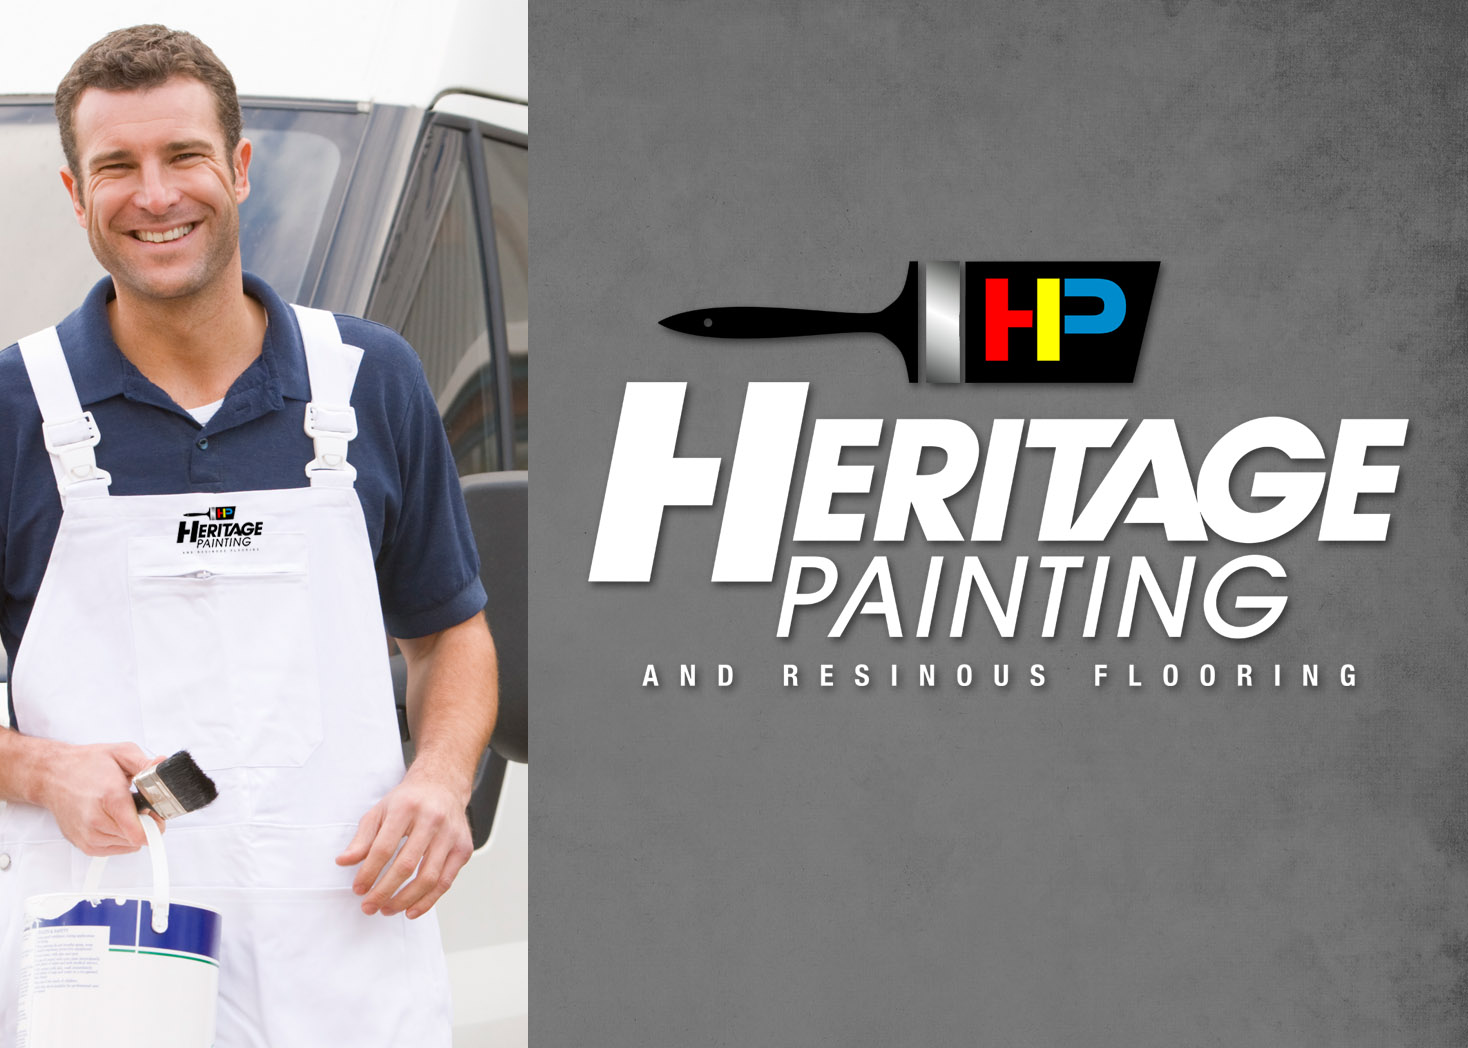 Heritage Painting Responsive Website Design - Lehman Design